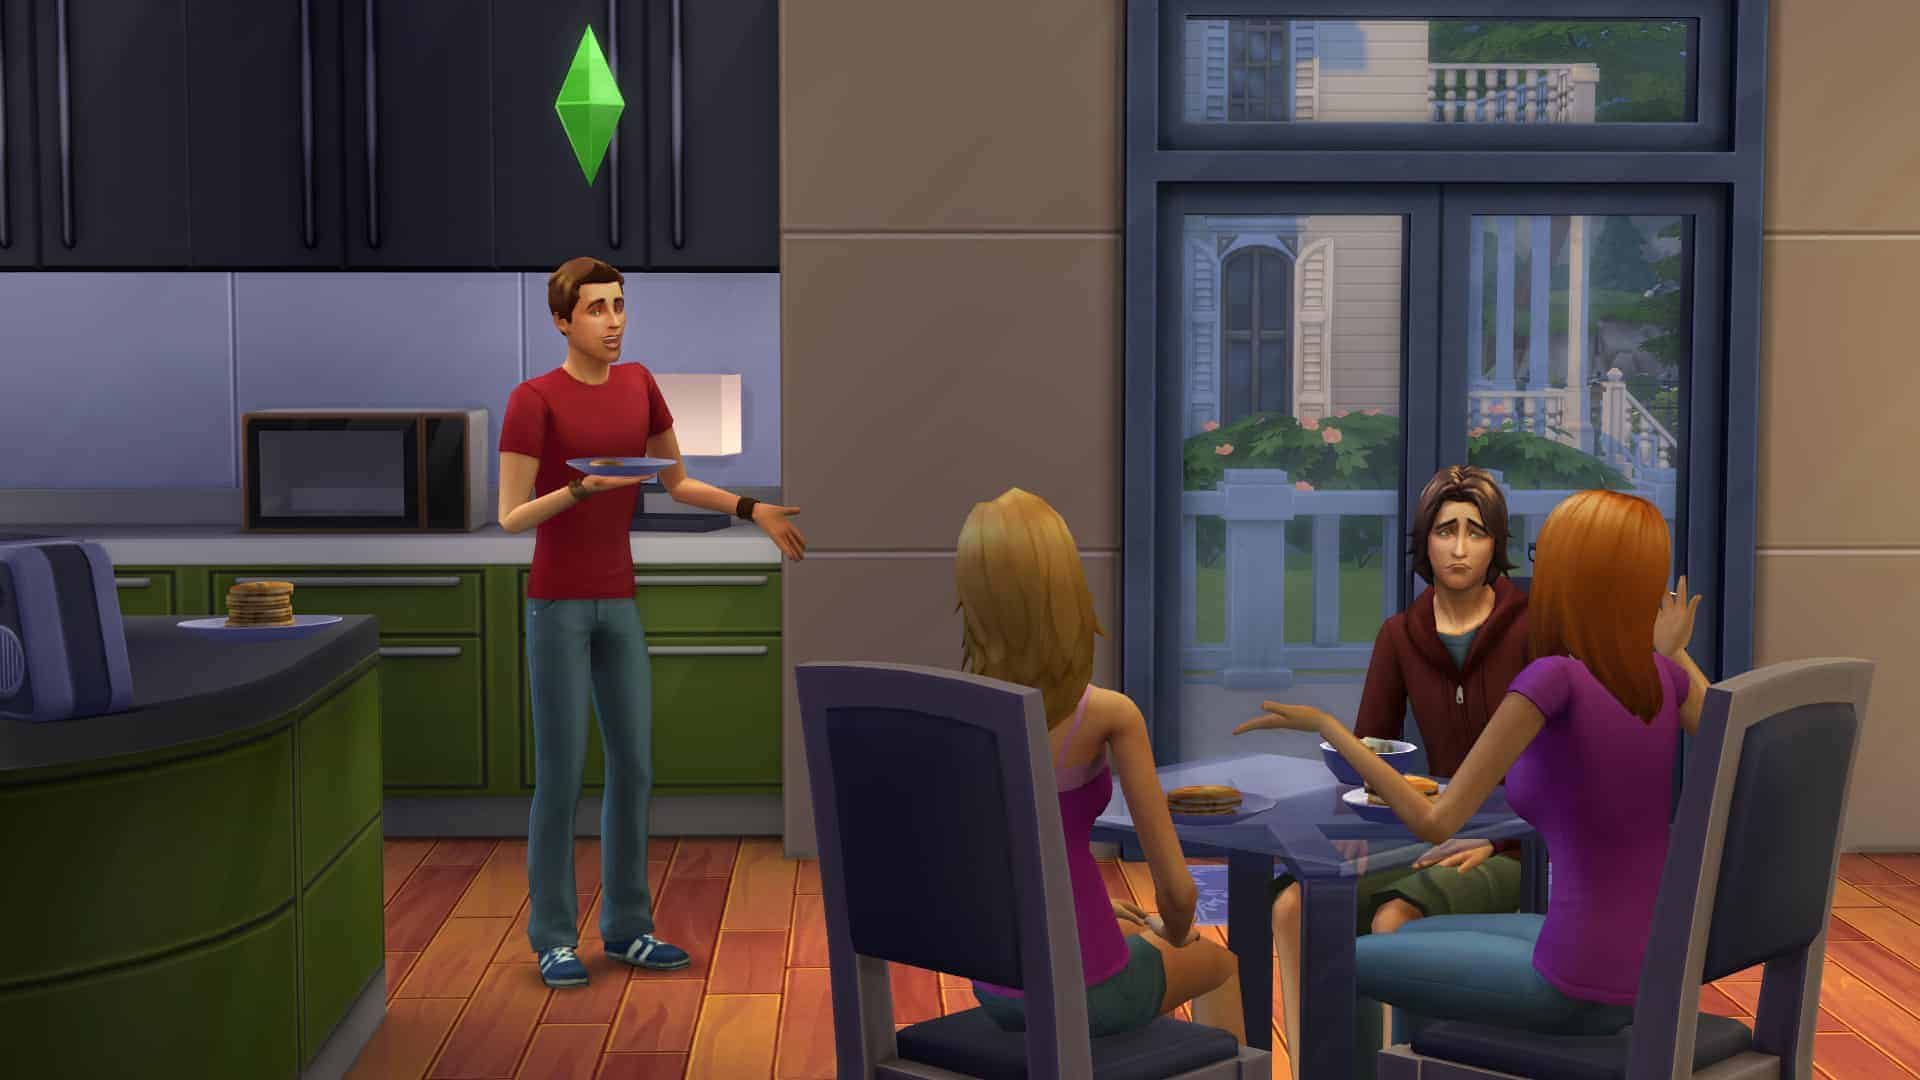 The Sims 4 Free pc game download - Install-Game